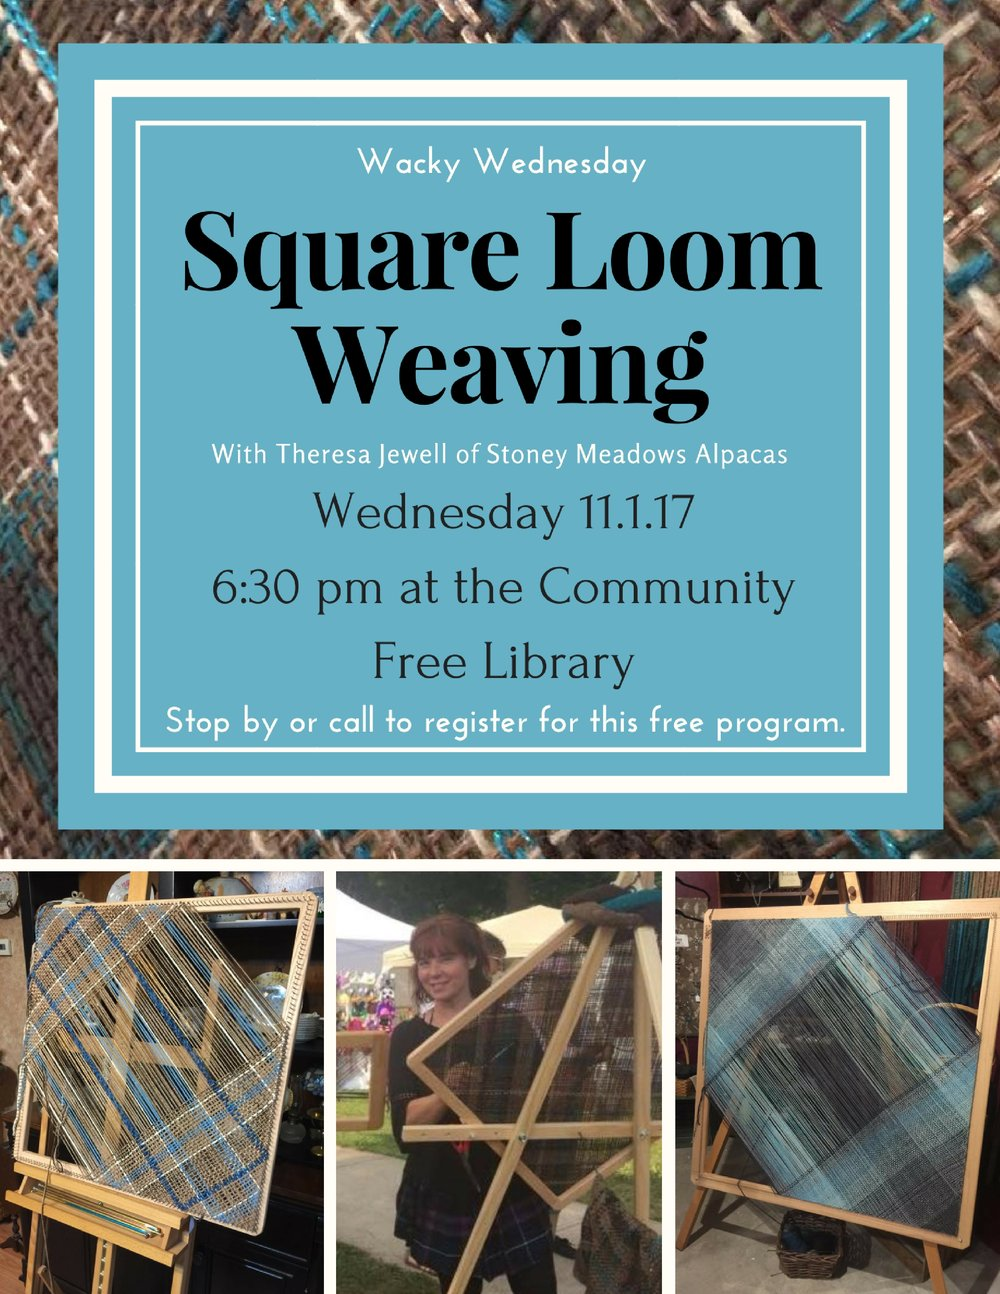 Square Loom Weaving.jpg